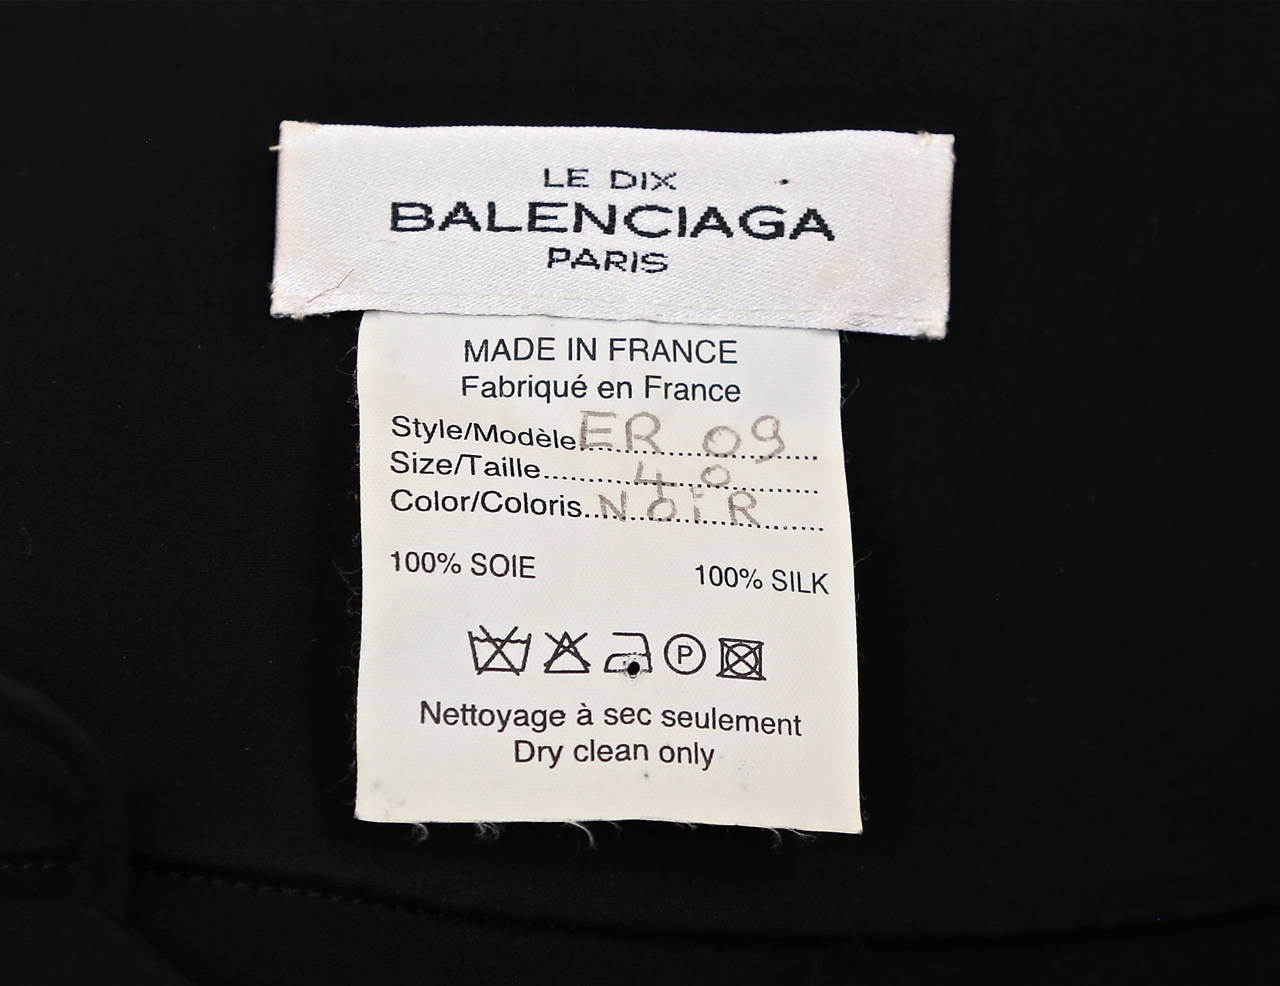 1998 BALENCIAGA 'le dix' by Nicolas Ghesquière black gown with sheer panels 4